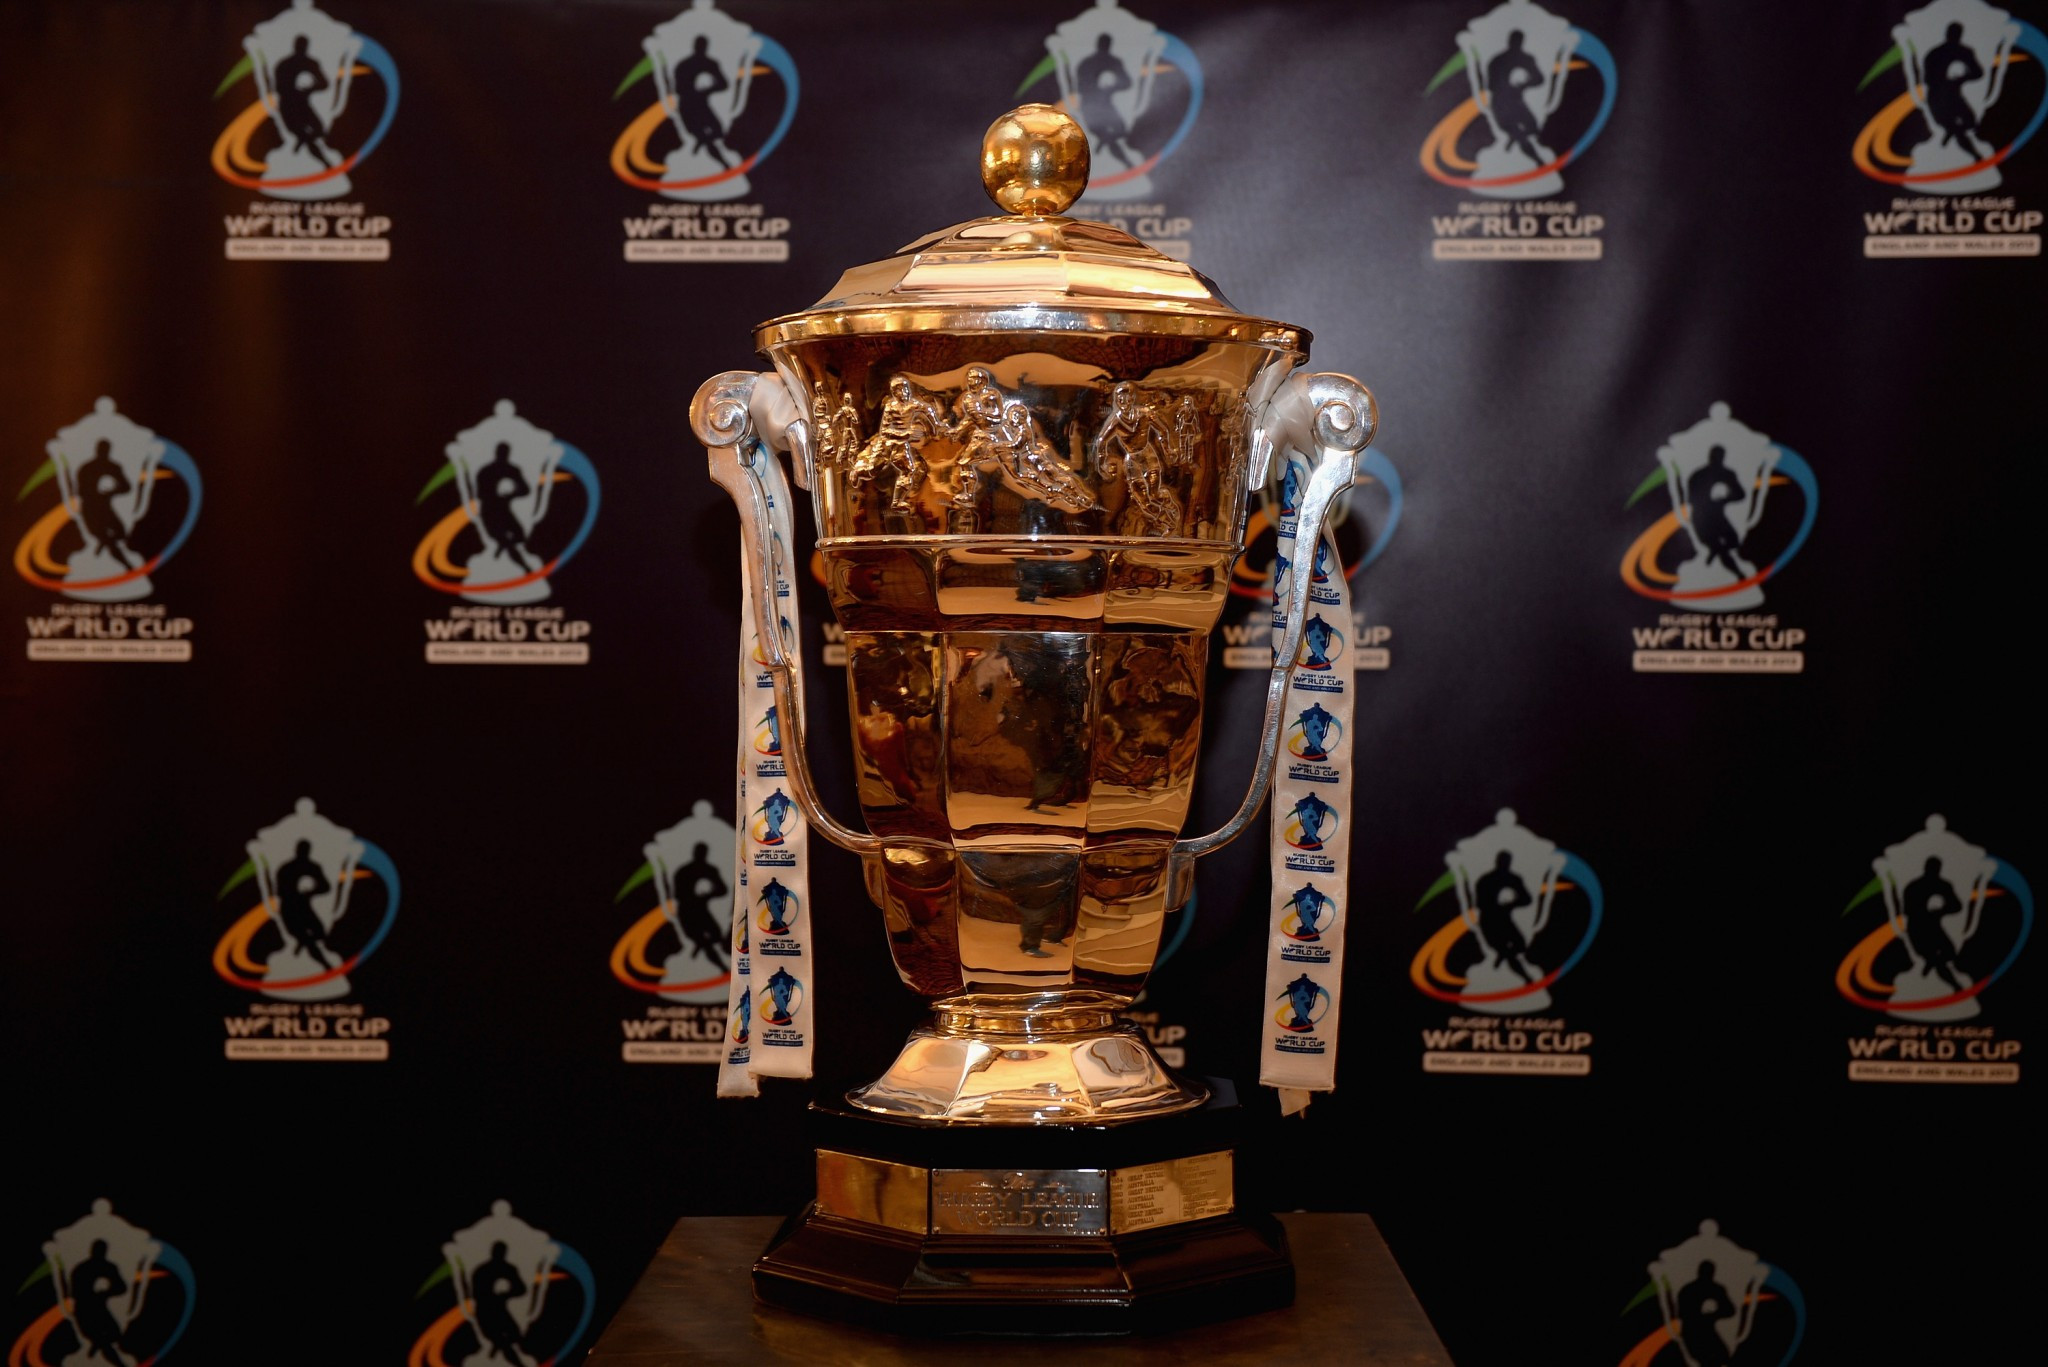 A total of 16 countries are due to take part in the 2021 Rugby World Cup in England ©Getty Images